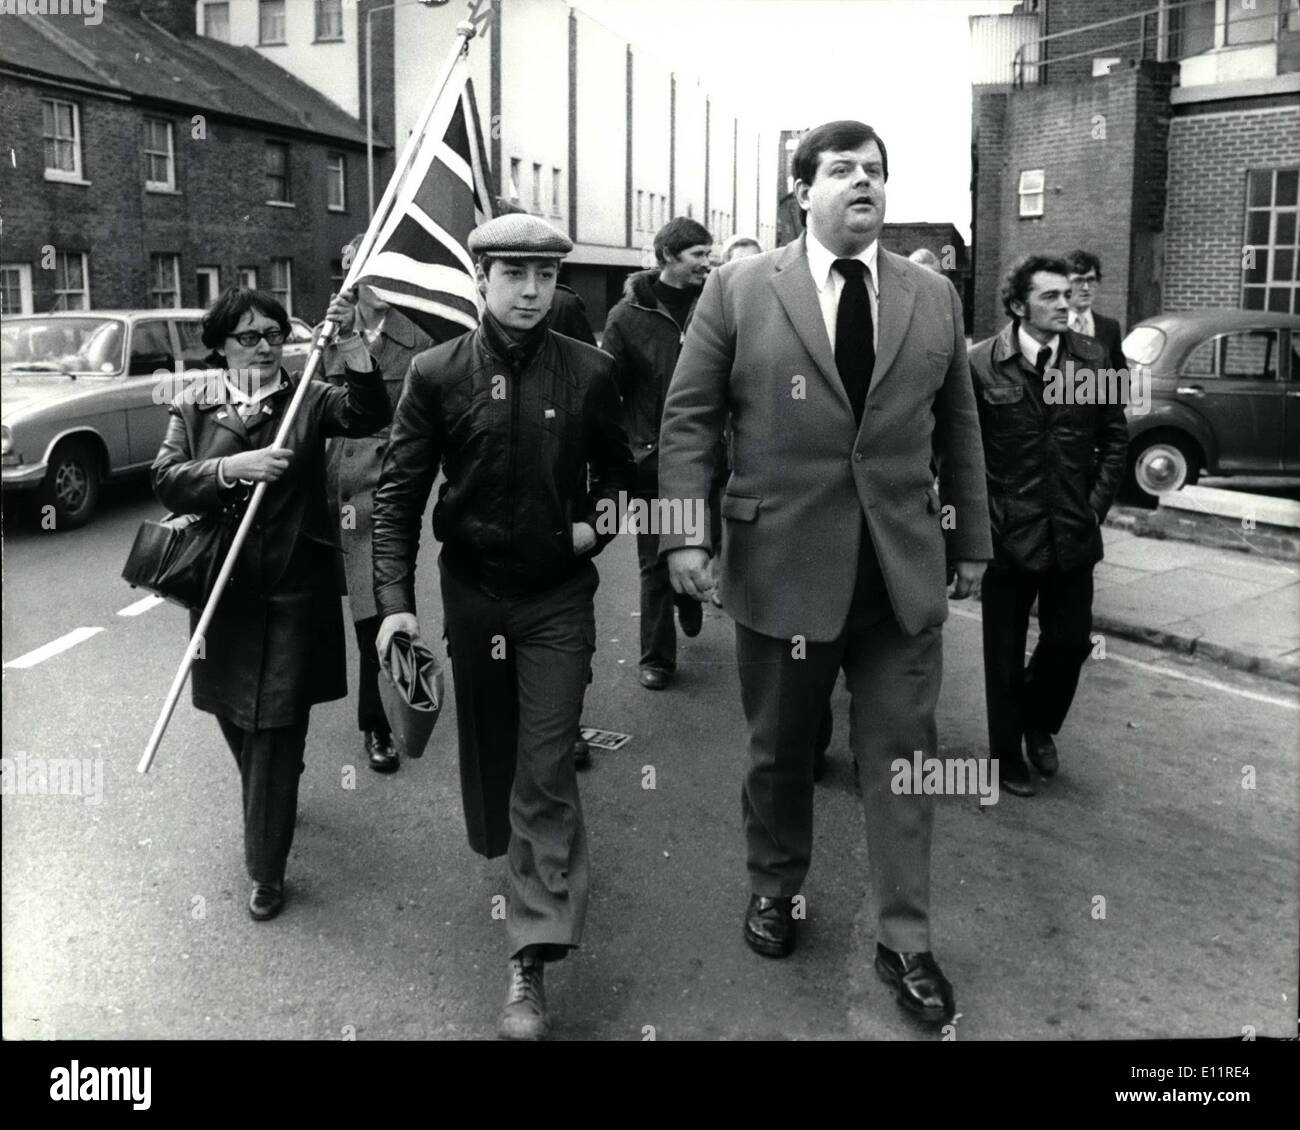 Oct. 10, 1979 - National Front Leader Martin Webster Gets A Six Month Suspended Jail Sentence: Martin Webster, the National Front leader was given a six-month suspended sentence at Kingston Crown Court yesterday for inciting racial hatred. He was also fined 150 and ordered to pay 530 costs. He denied publishing abusive material likely to incite racial hatred. As he left the court he said: ''I will continue to campaign against colored immigration''. Photo shows Martin Webster seen leaving Kingston Crown Court with some of his followers. Stock Photo